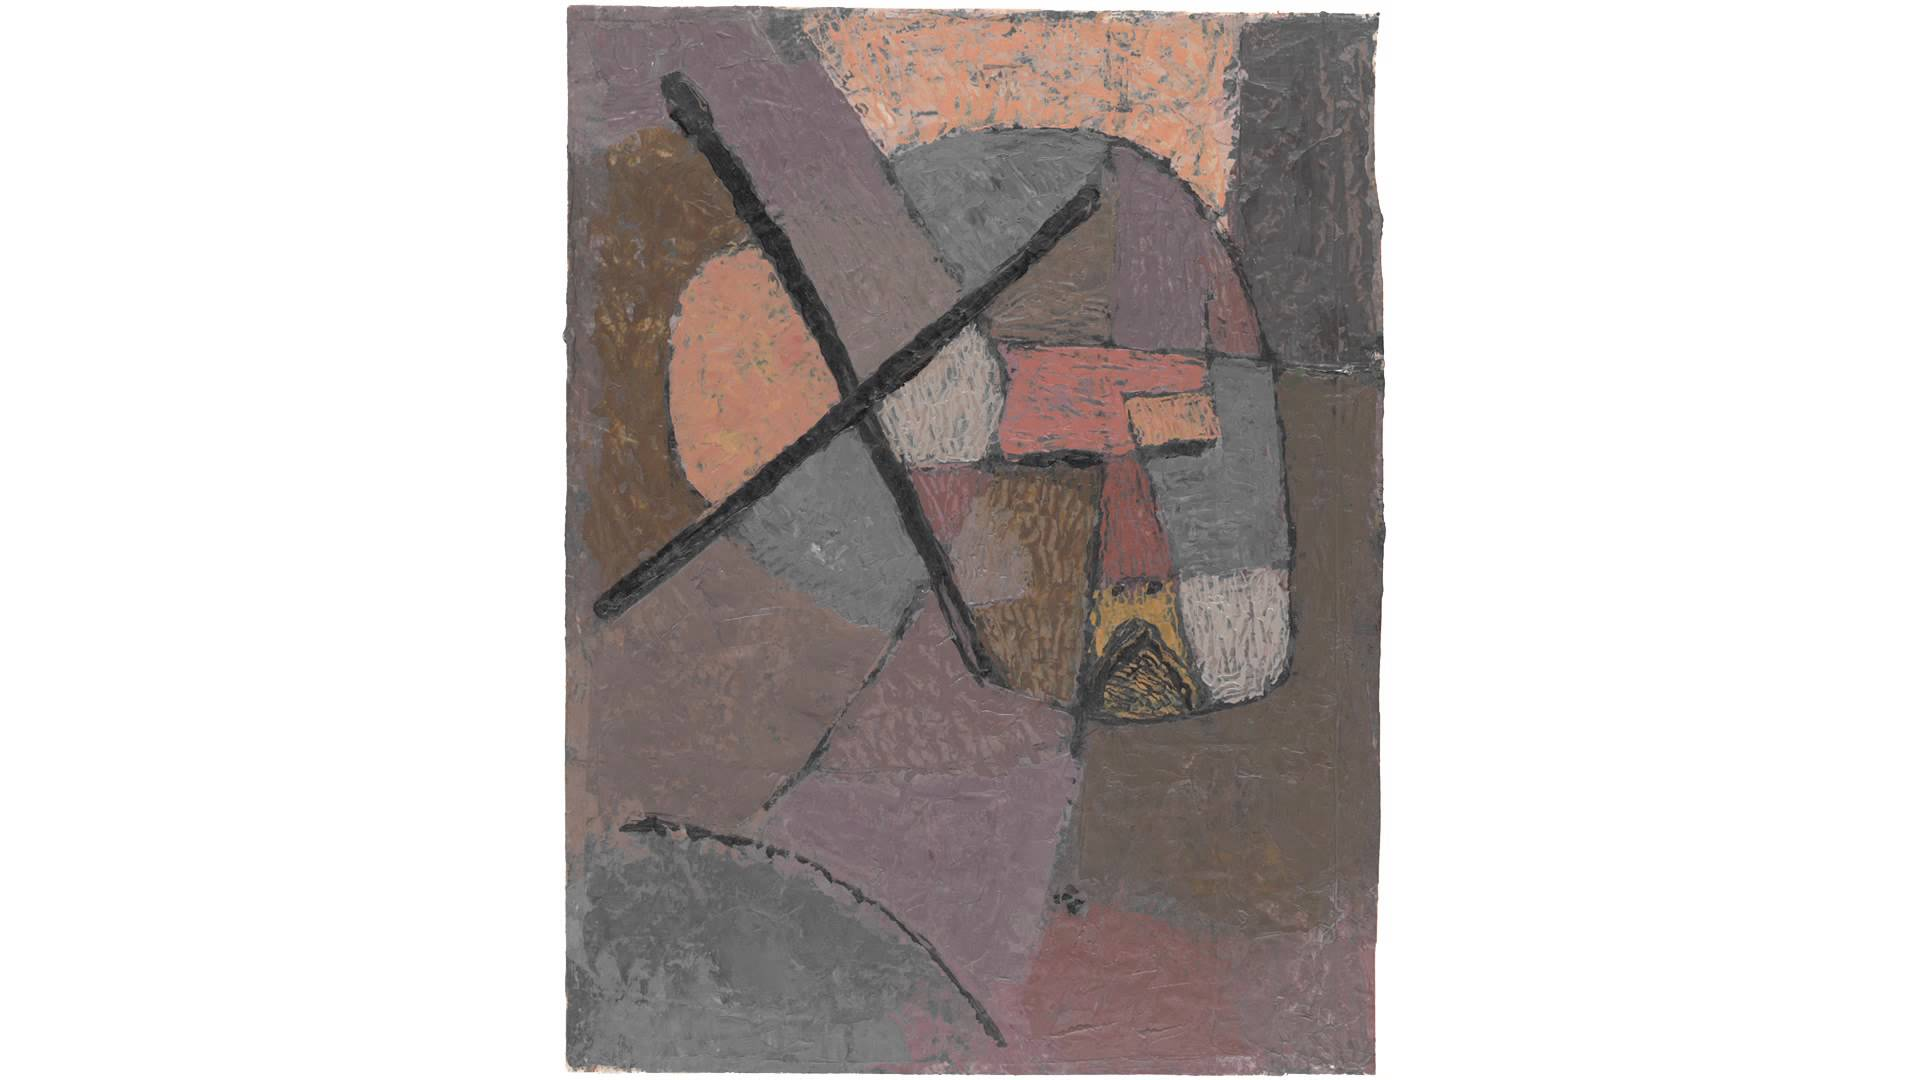 Struck from the List (Klee)